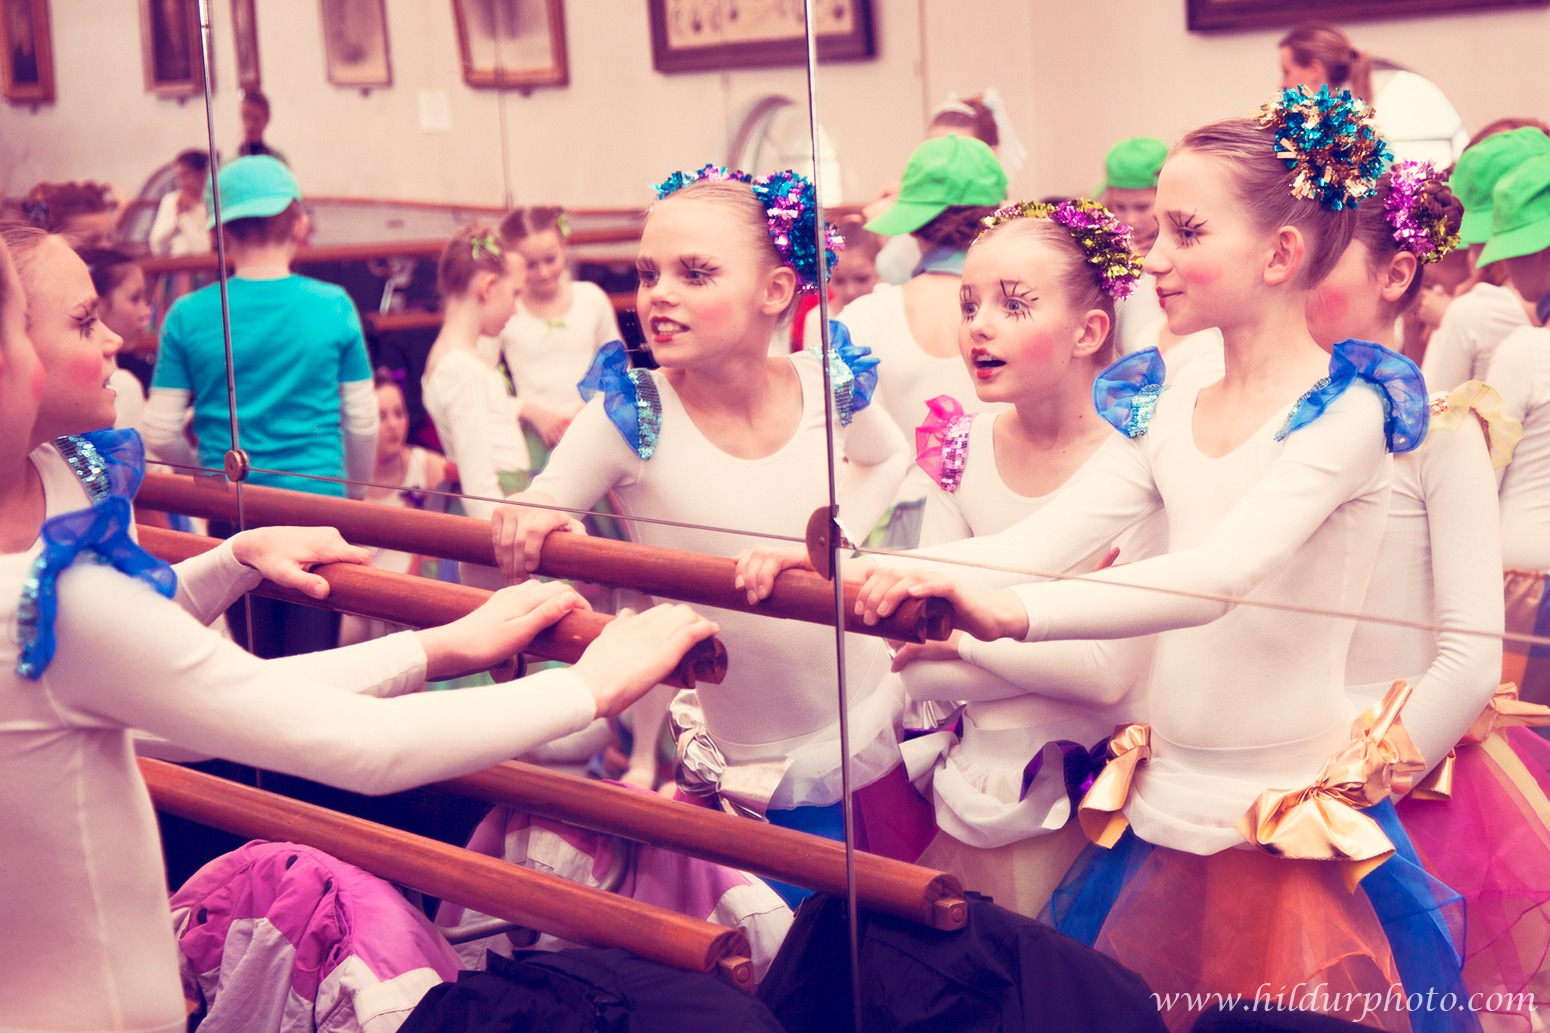 Ballerinas at The Dance Academy of Southern Jutland